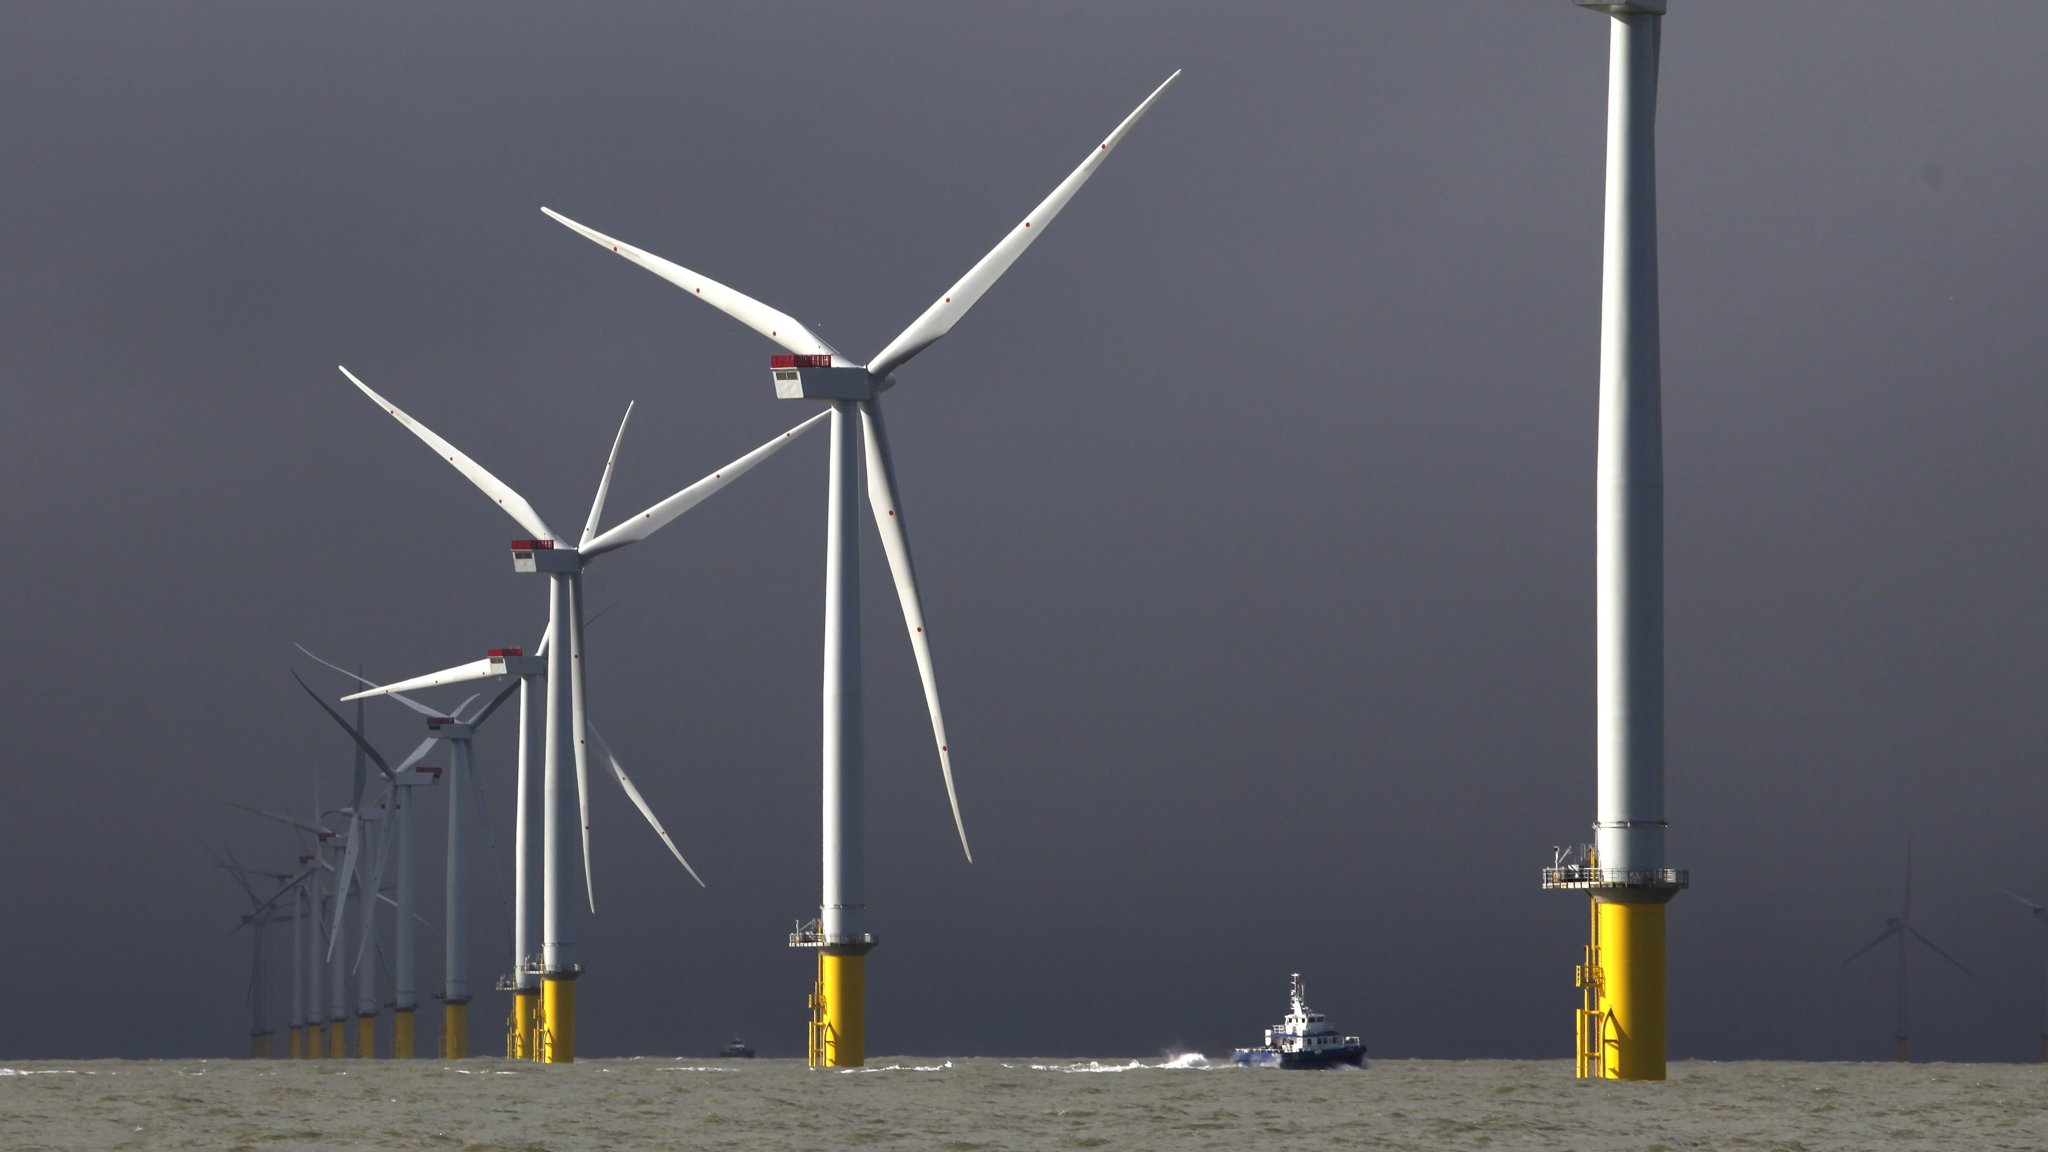 Scottish wind farm project faces collapse after subsidy U turn